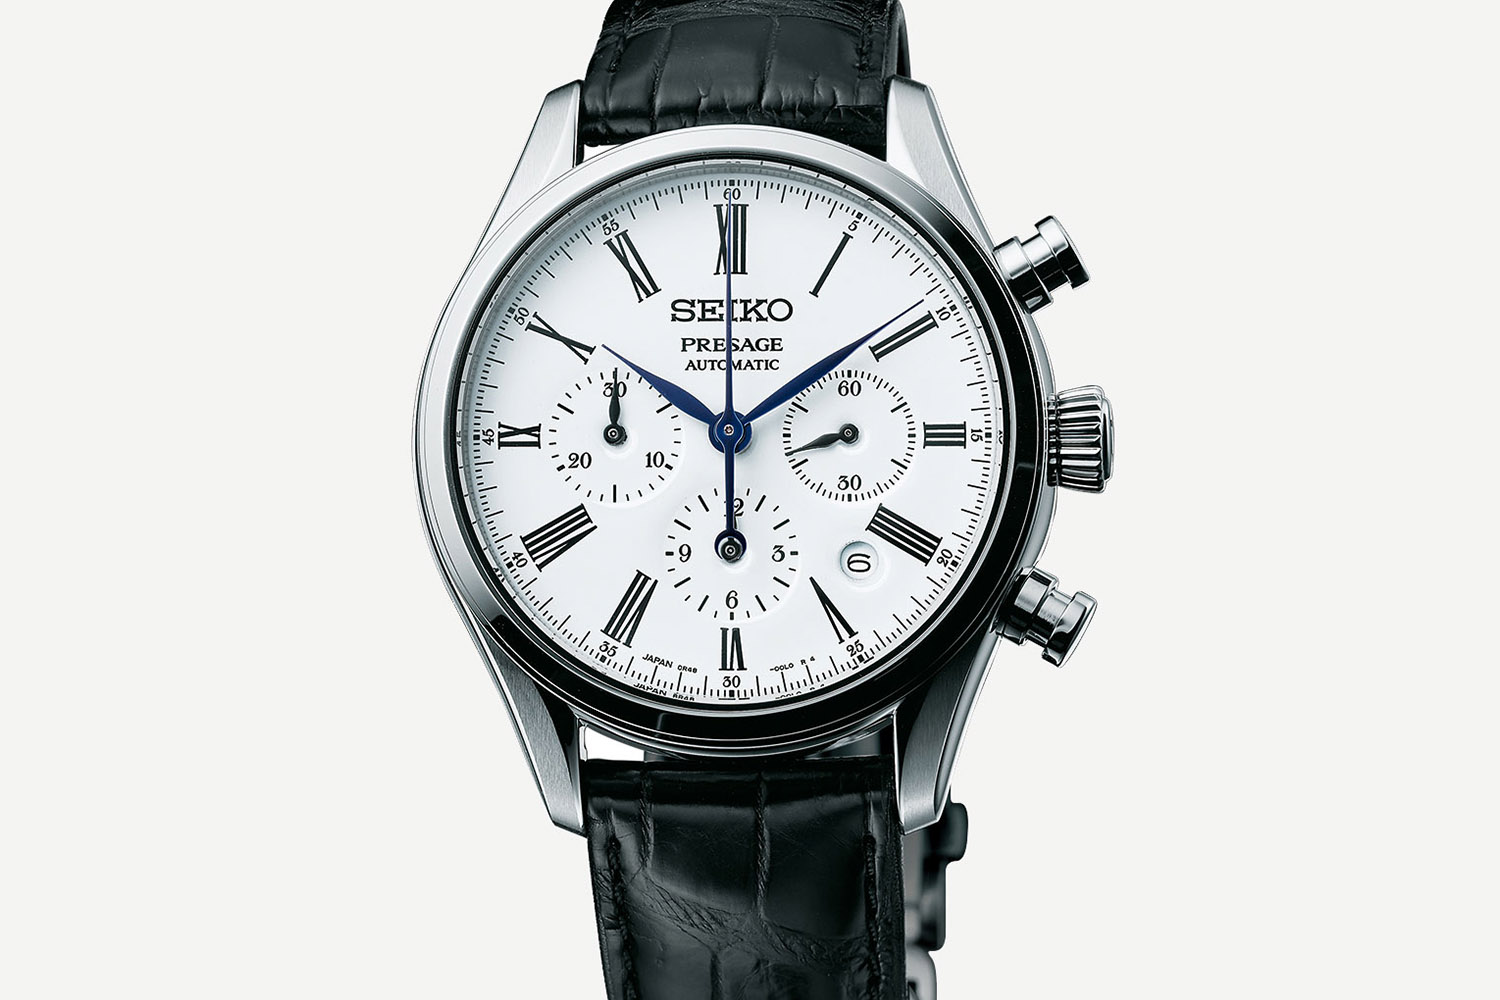 Seiko Presage Fired Enamel Dial Collection - Presage Automatic Chronograph SRQ023